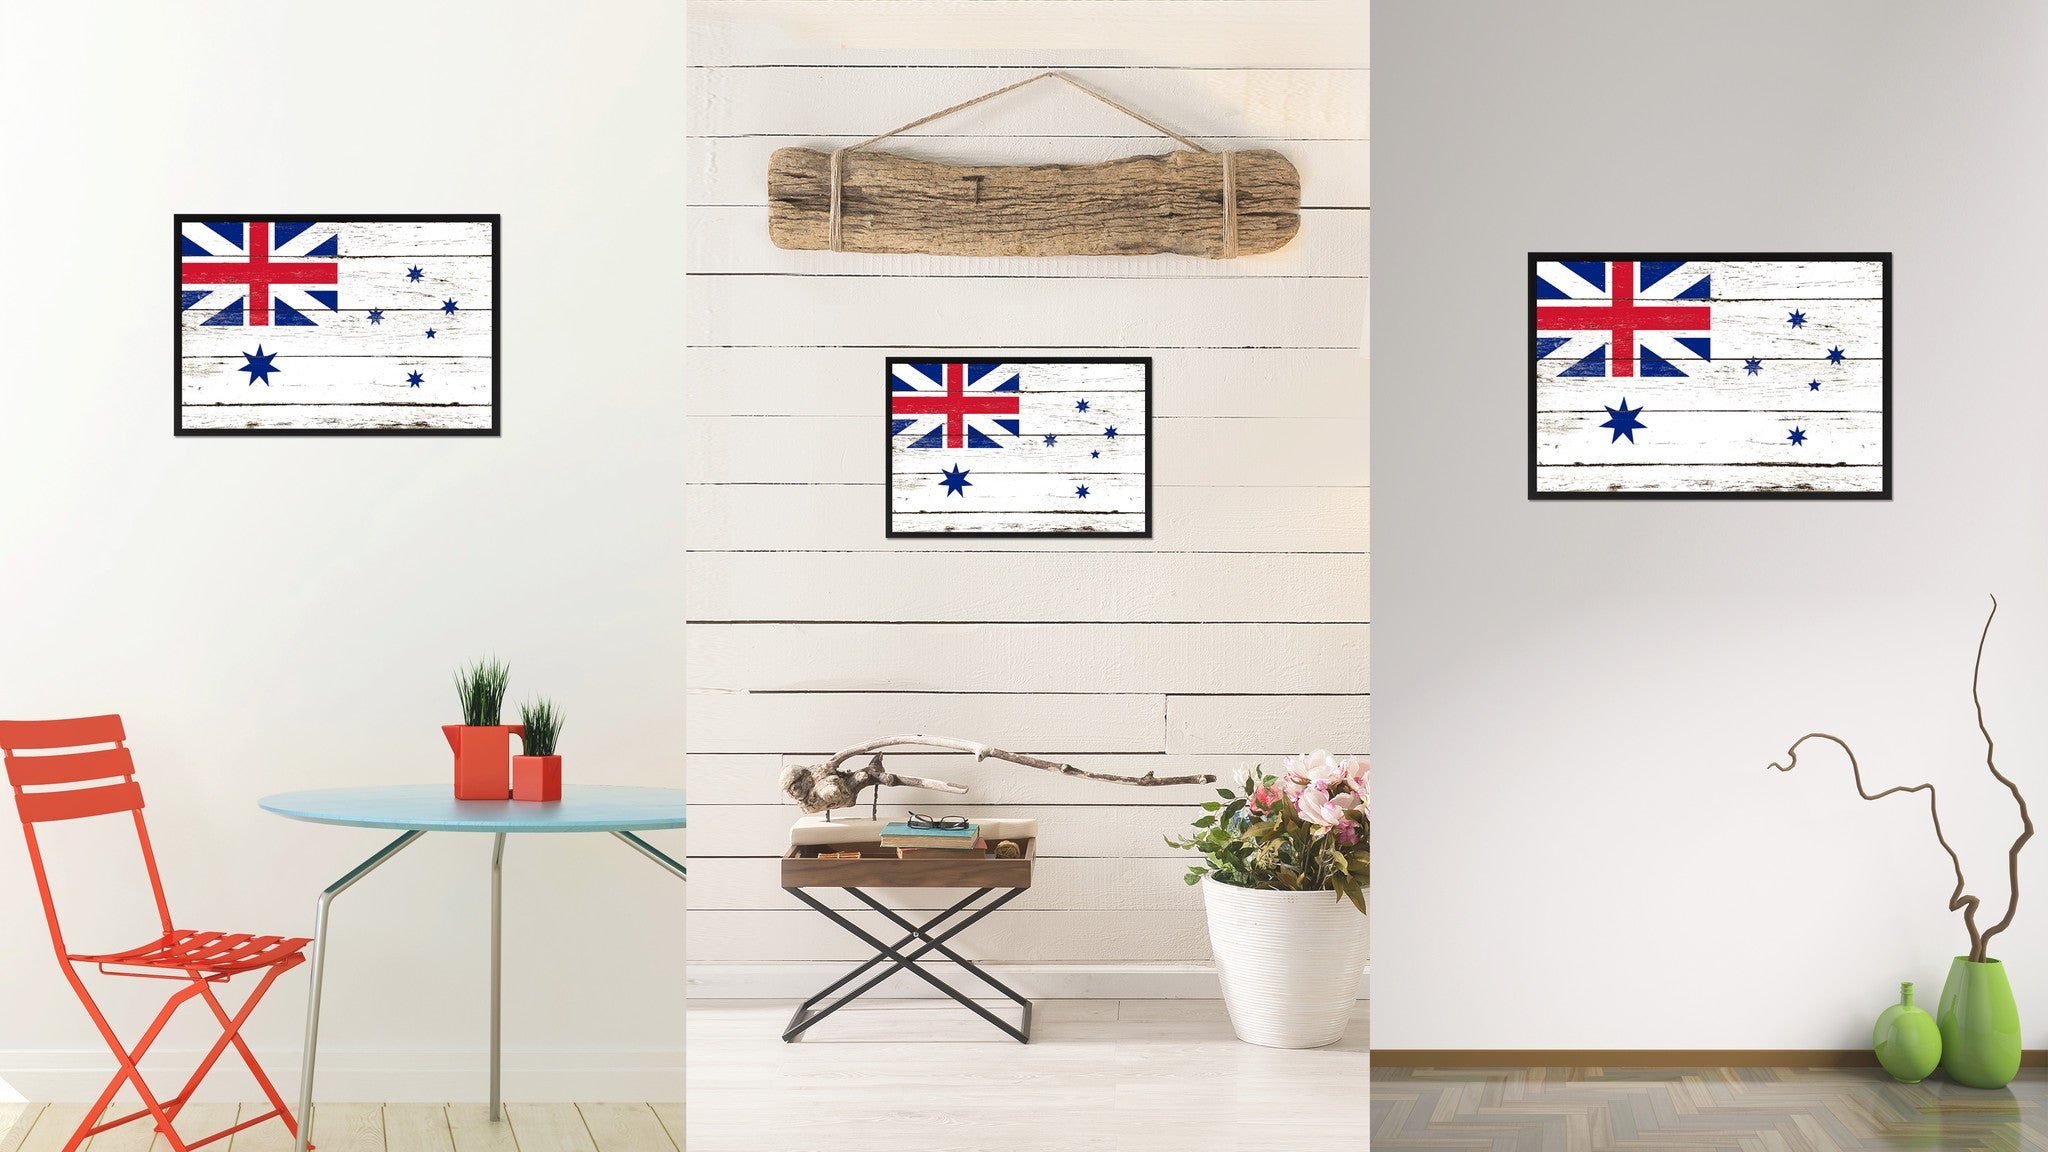 Australian White Ensign City Australia Country Flag Vintage Canvas Print  With Black Picture Frame Home Decor